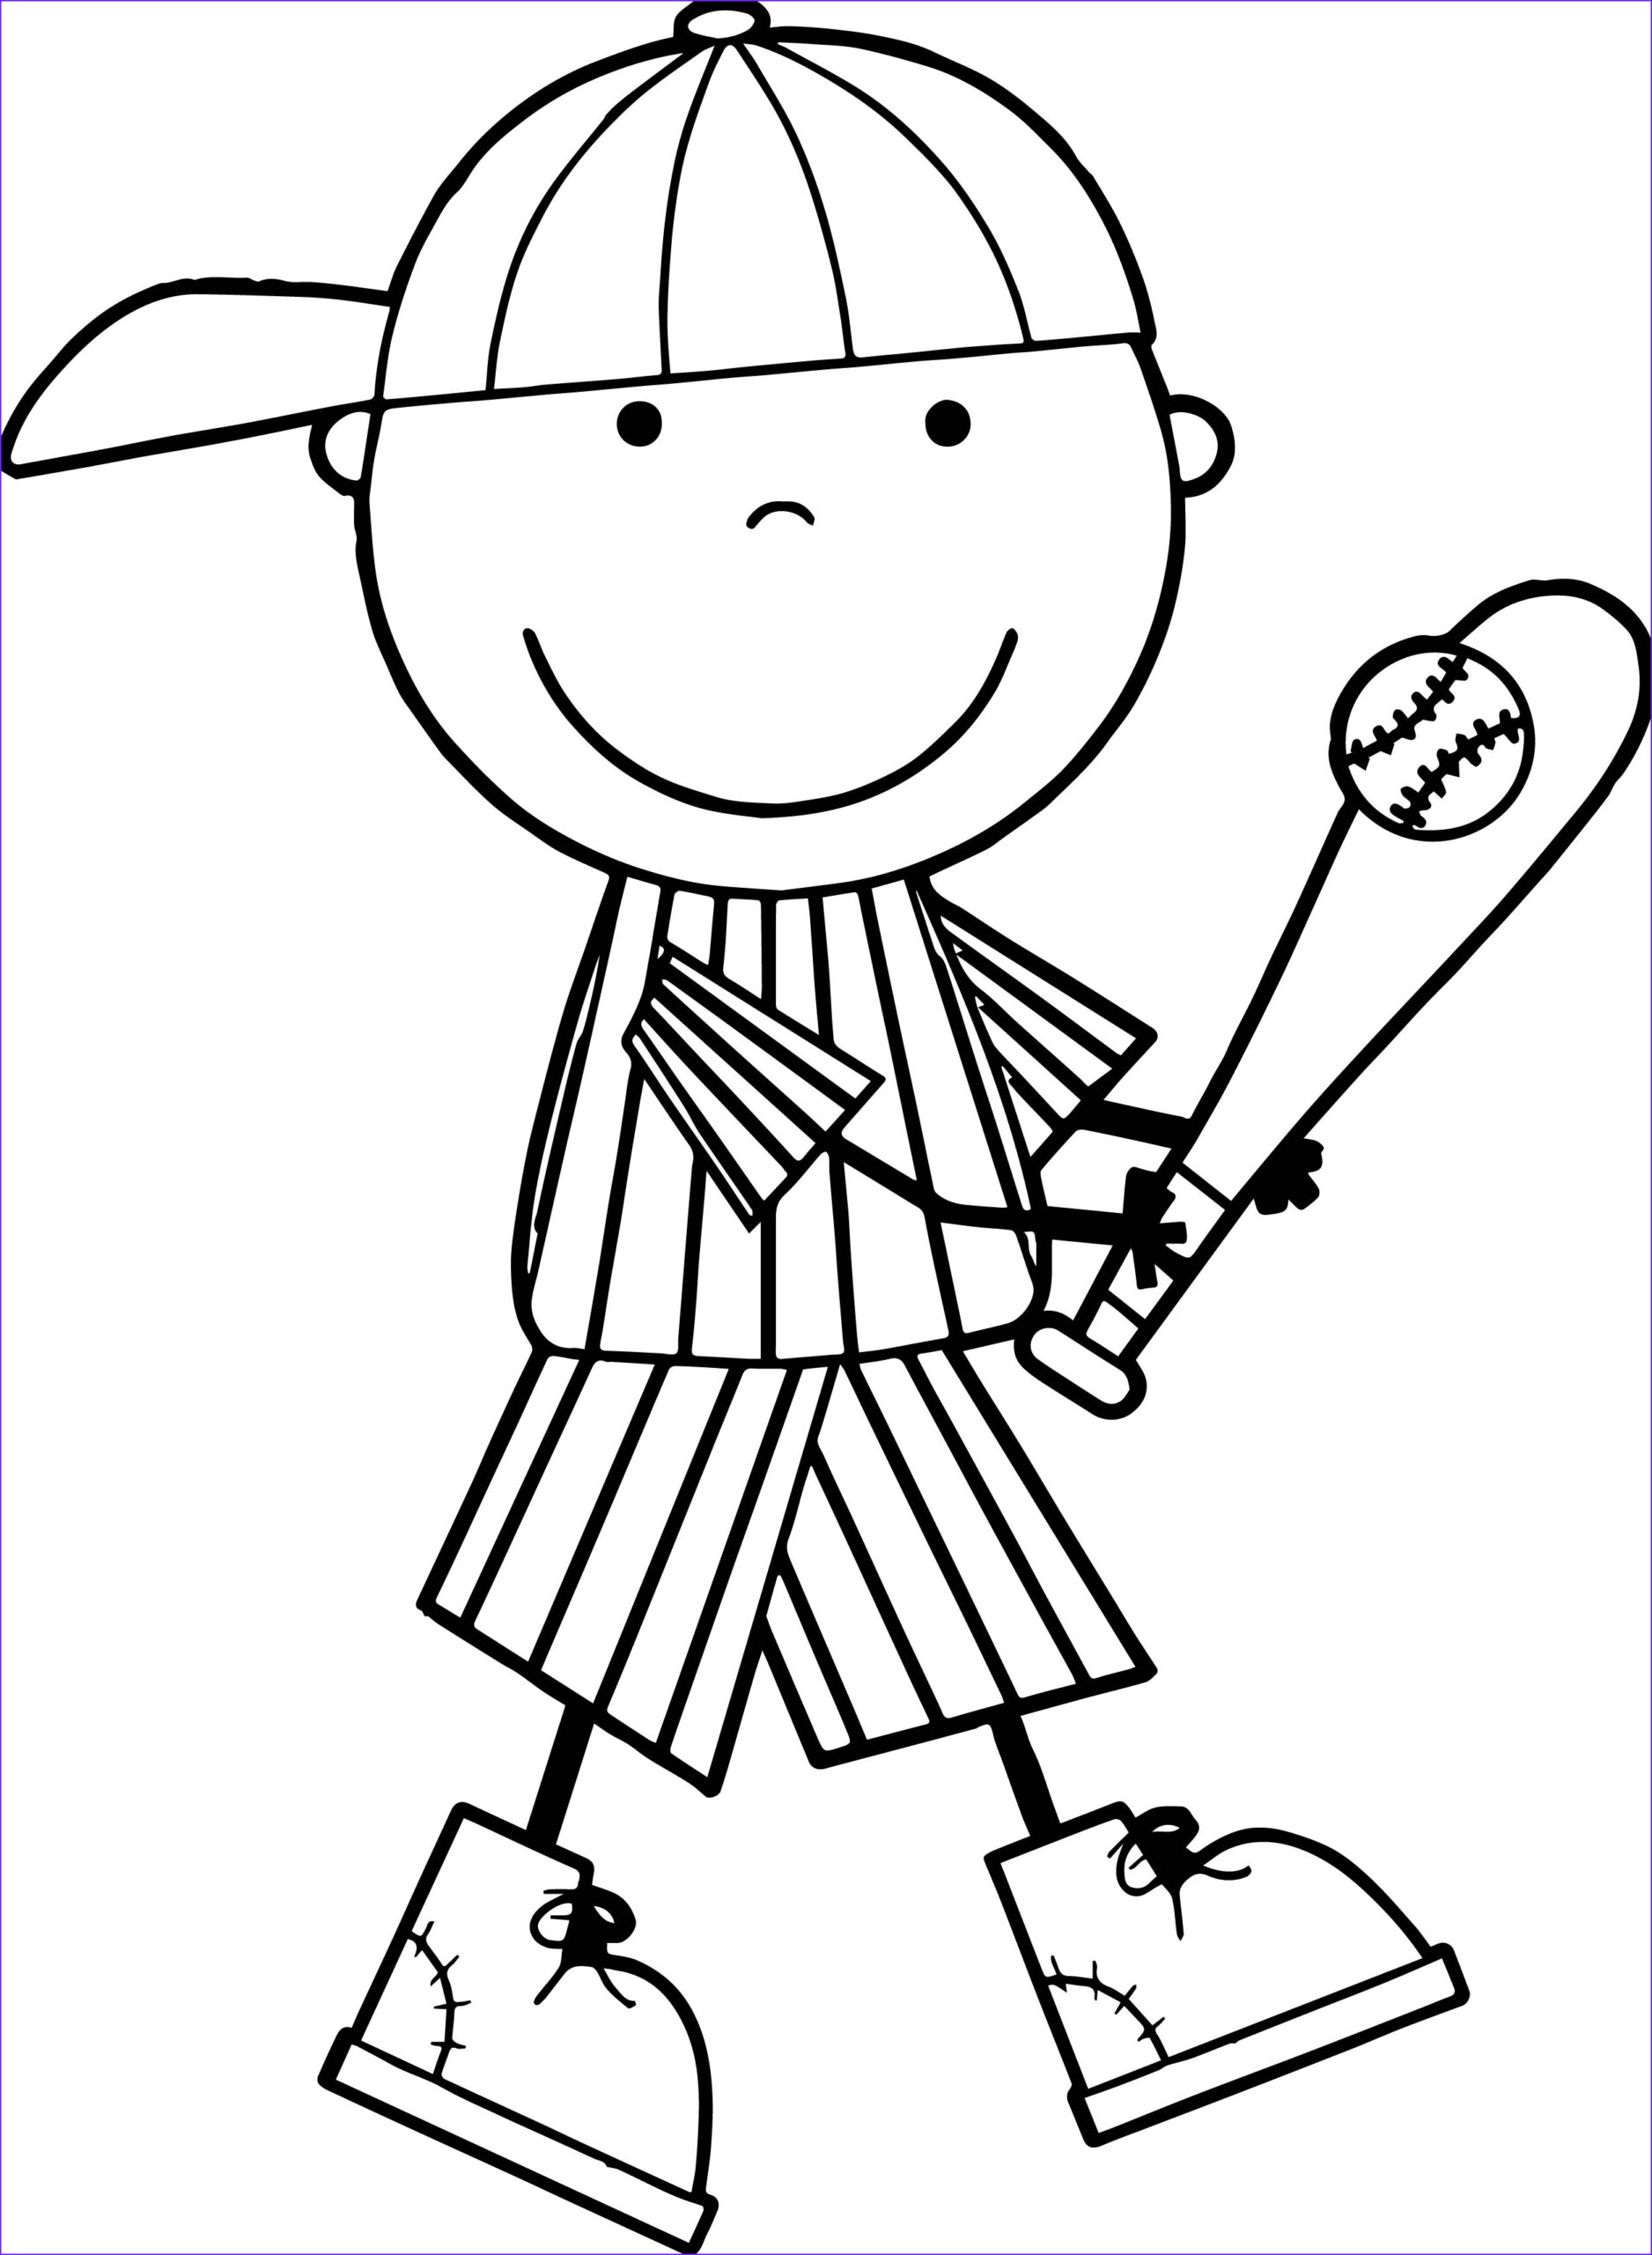 coloring pages of baseball